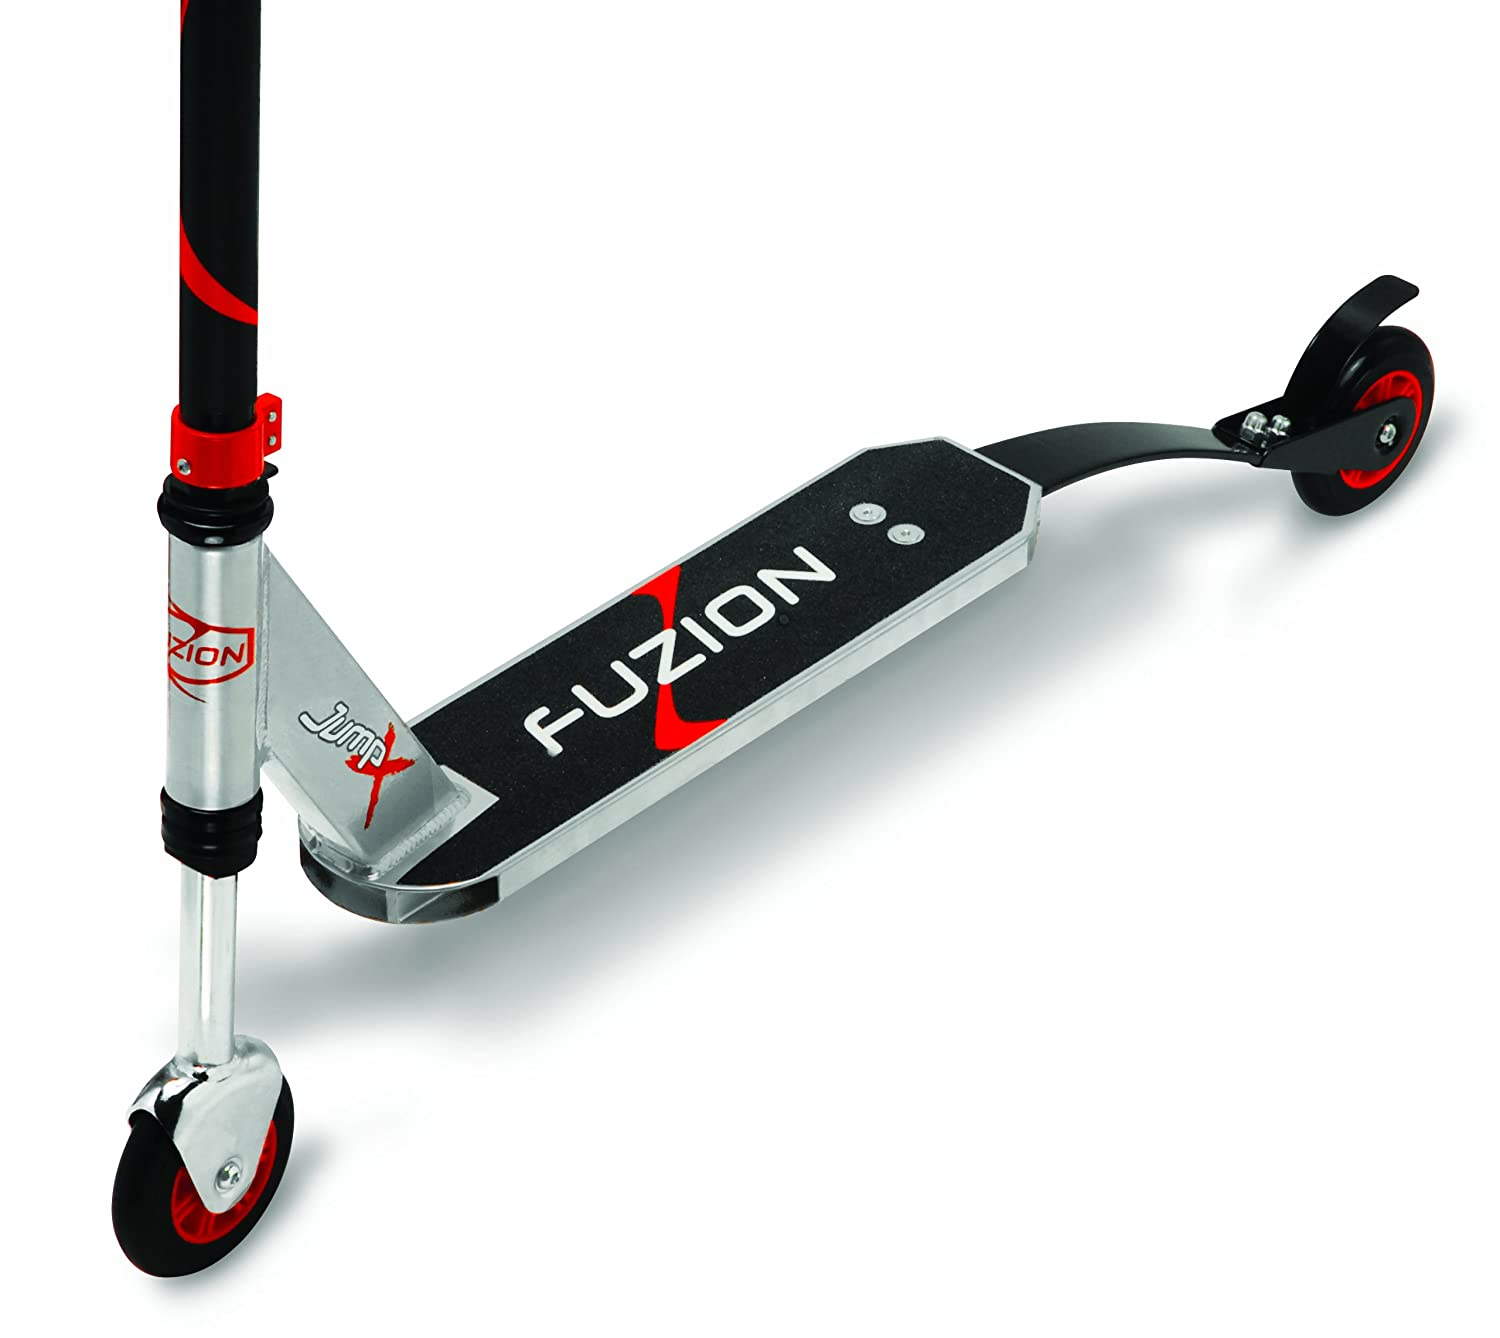 Amazon.com: Fuzion – jumpx Pogo Scooter: Sports & Outdoors